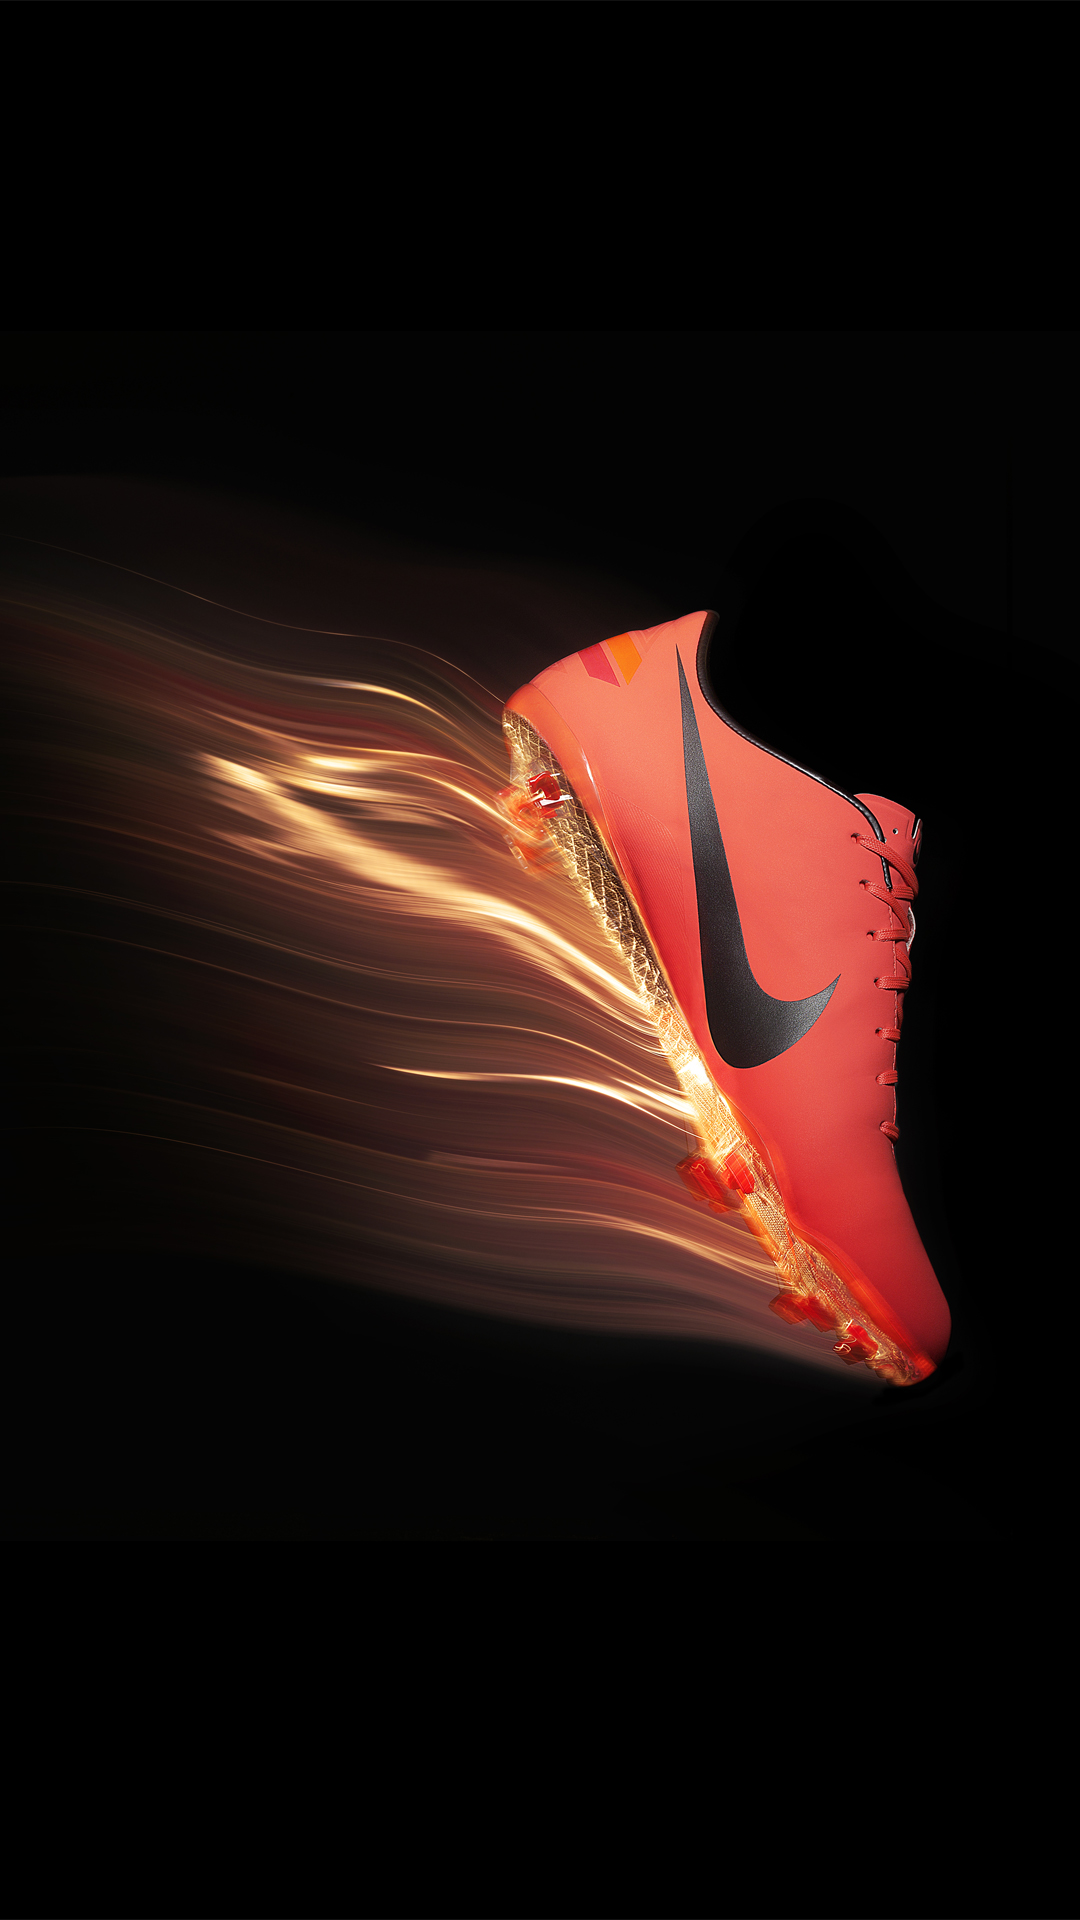 Nike soccer in flames